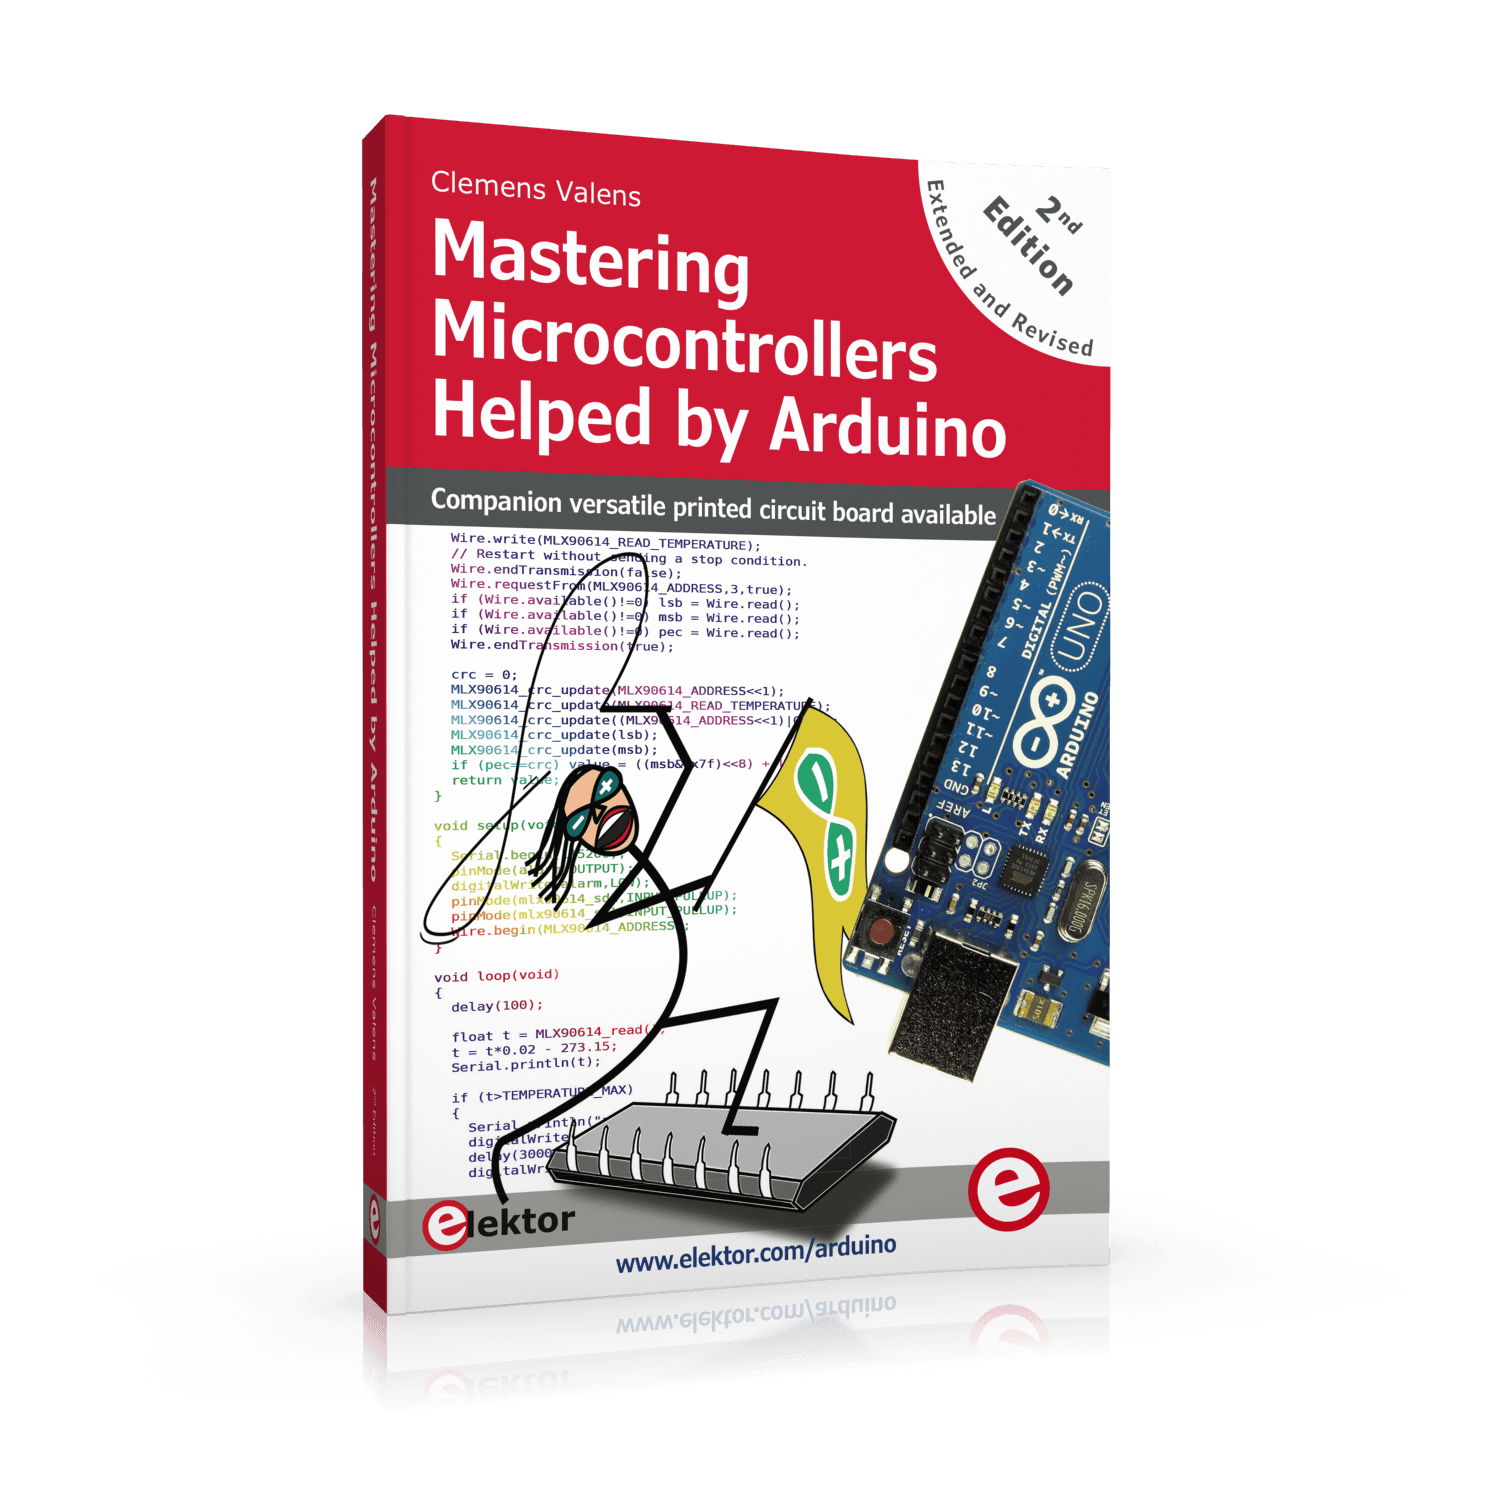 Mastering Microcontrollers Helped by Arduino